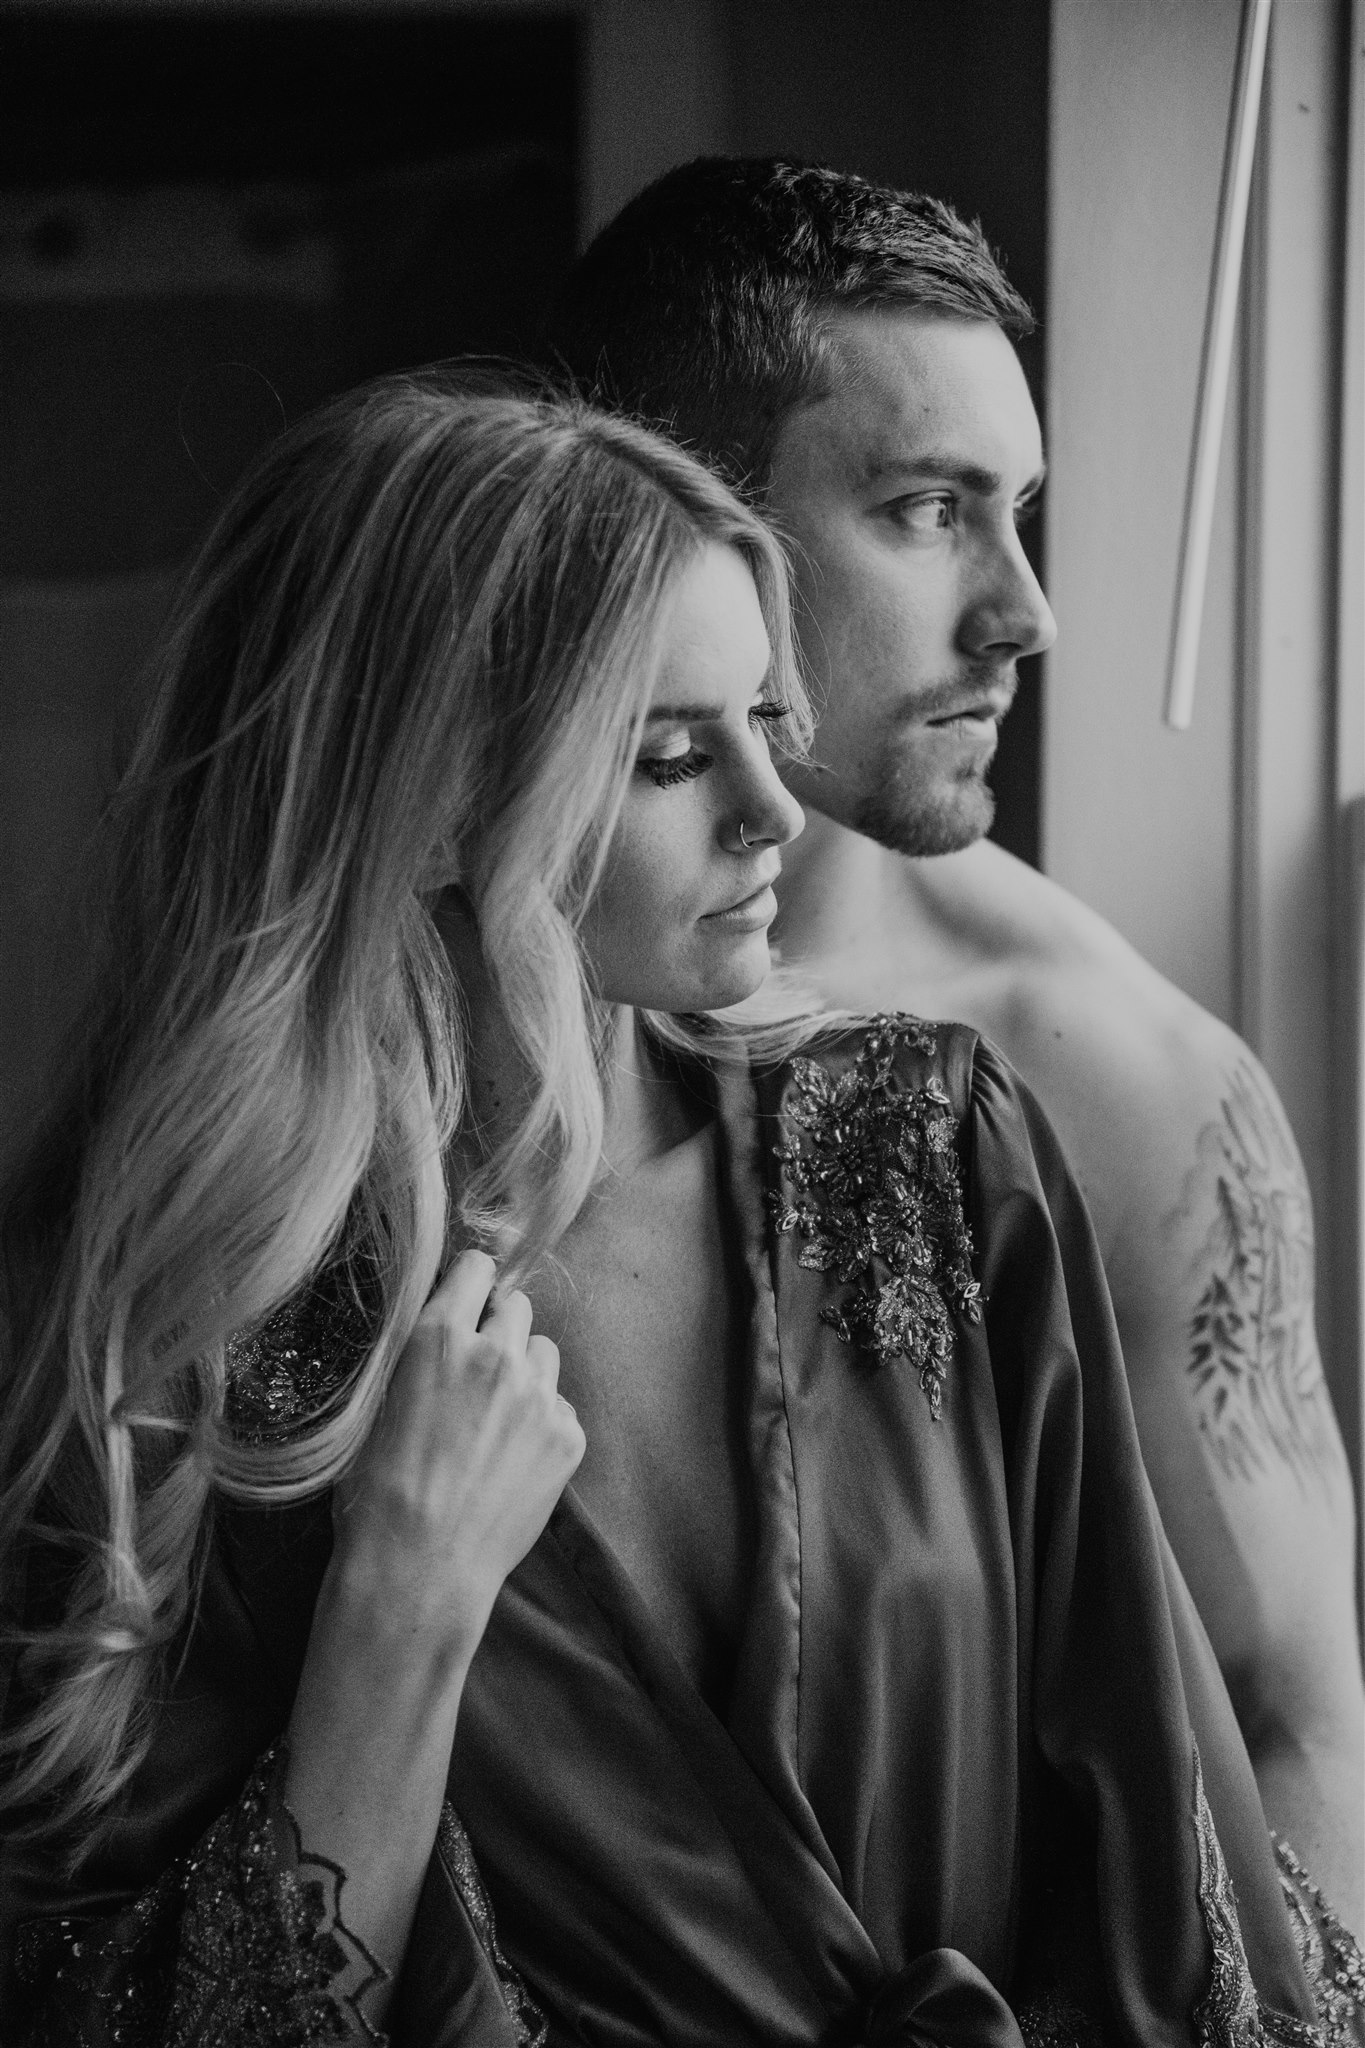 netflix and chill_couples boudoir_abigail miles photography169.jpg